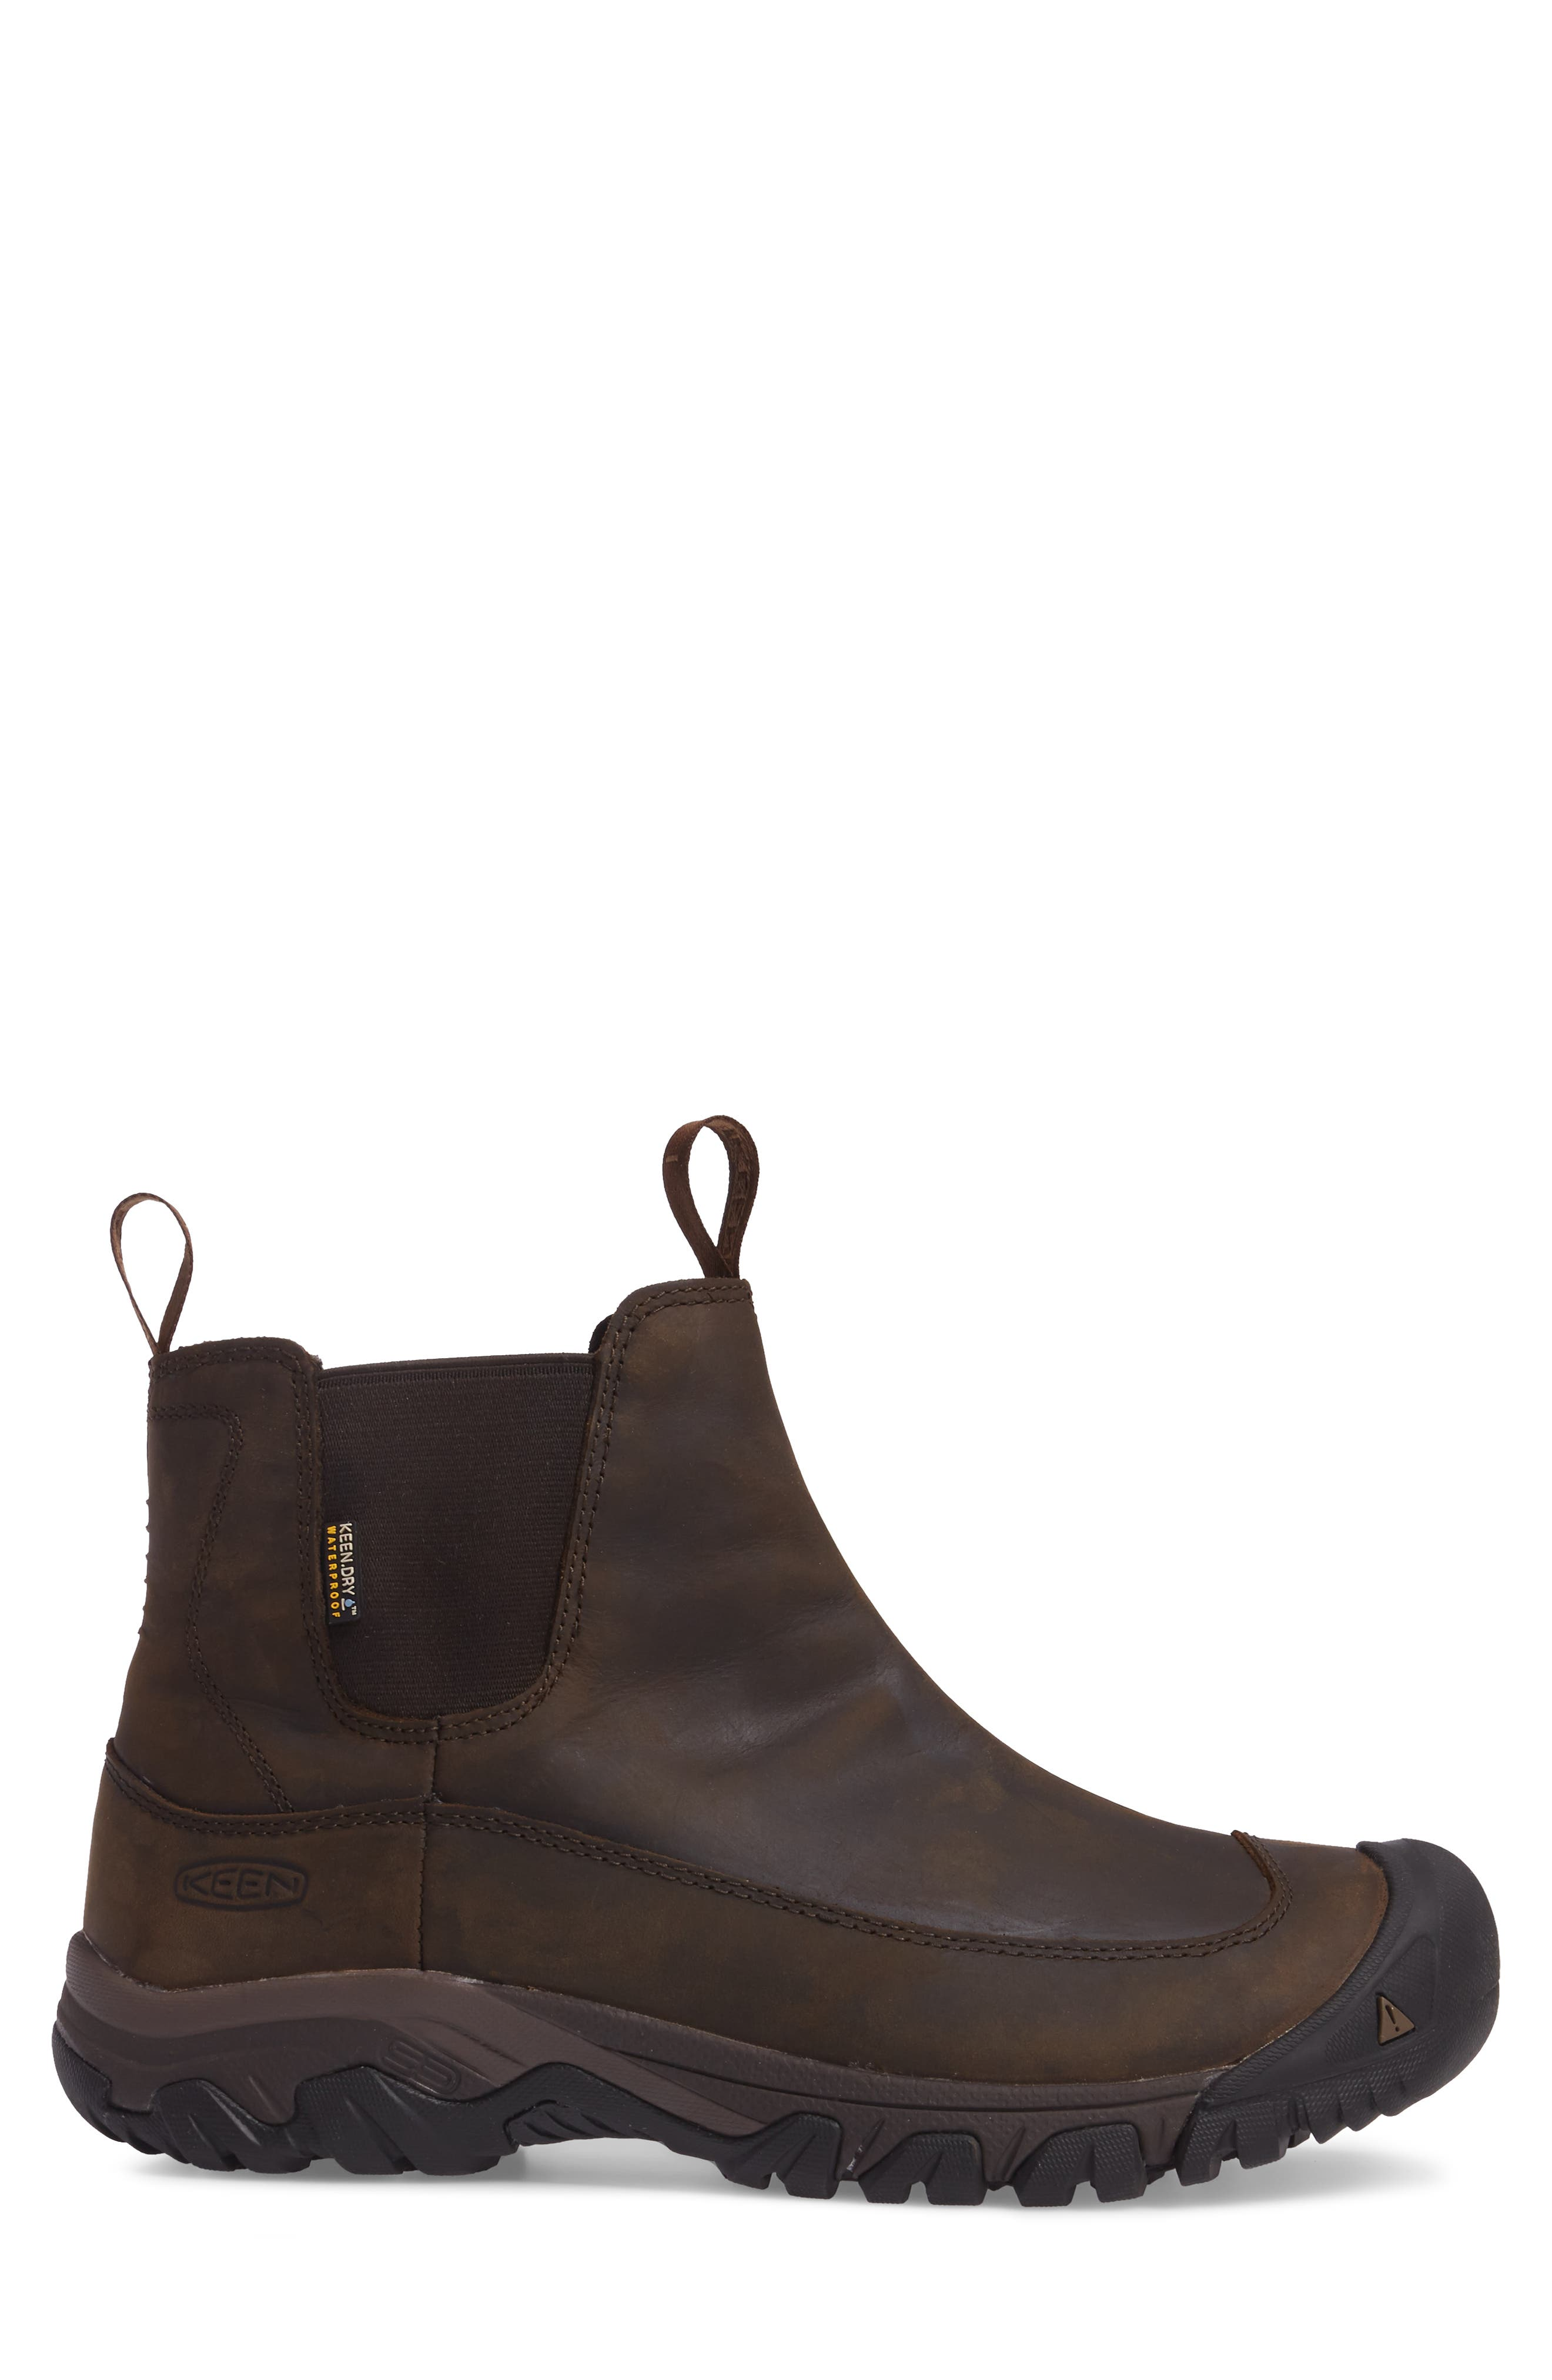 Alternate Image 3  - Keen Anchorage II Waterproof Chelsea Boot (Men)